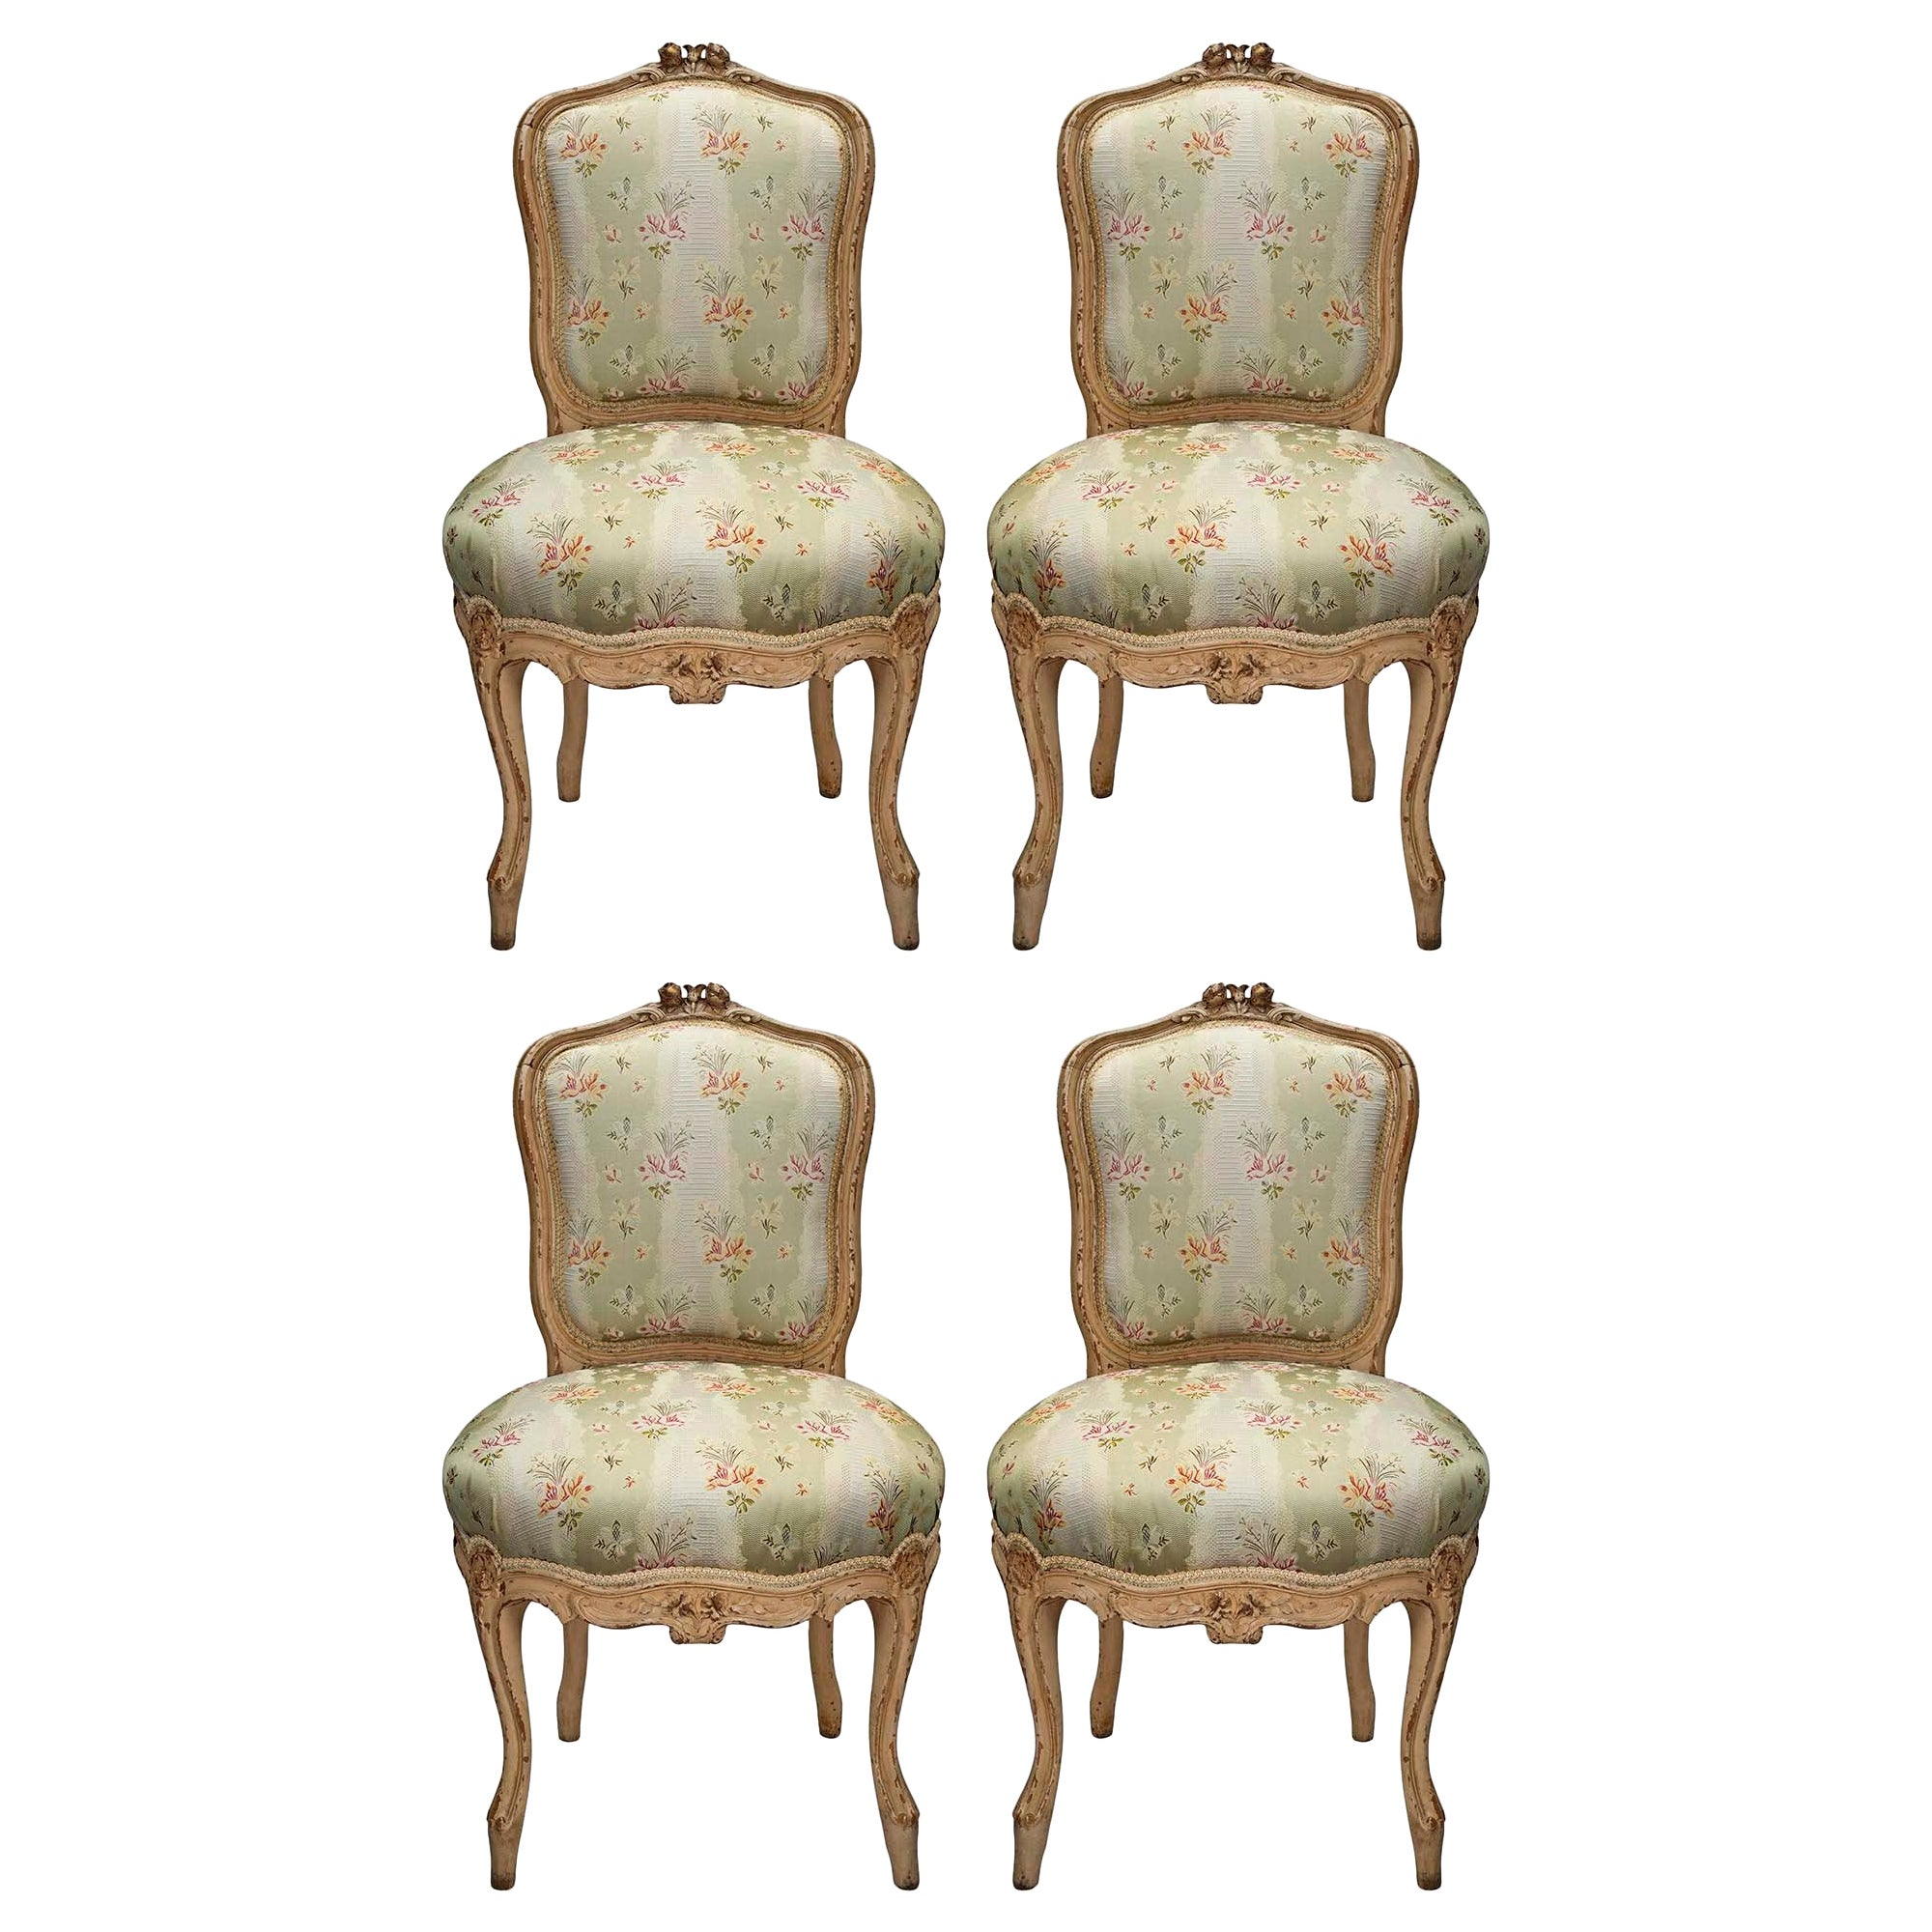 Set of Four French Mid-19th Century Louis XV Style Carved Chairs